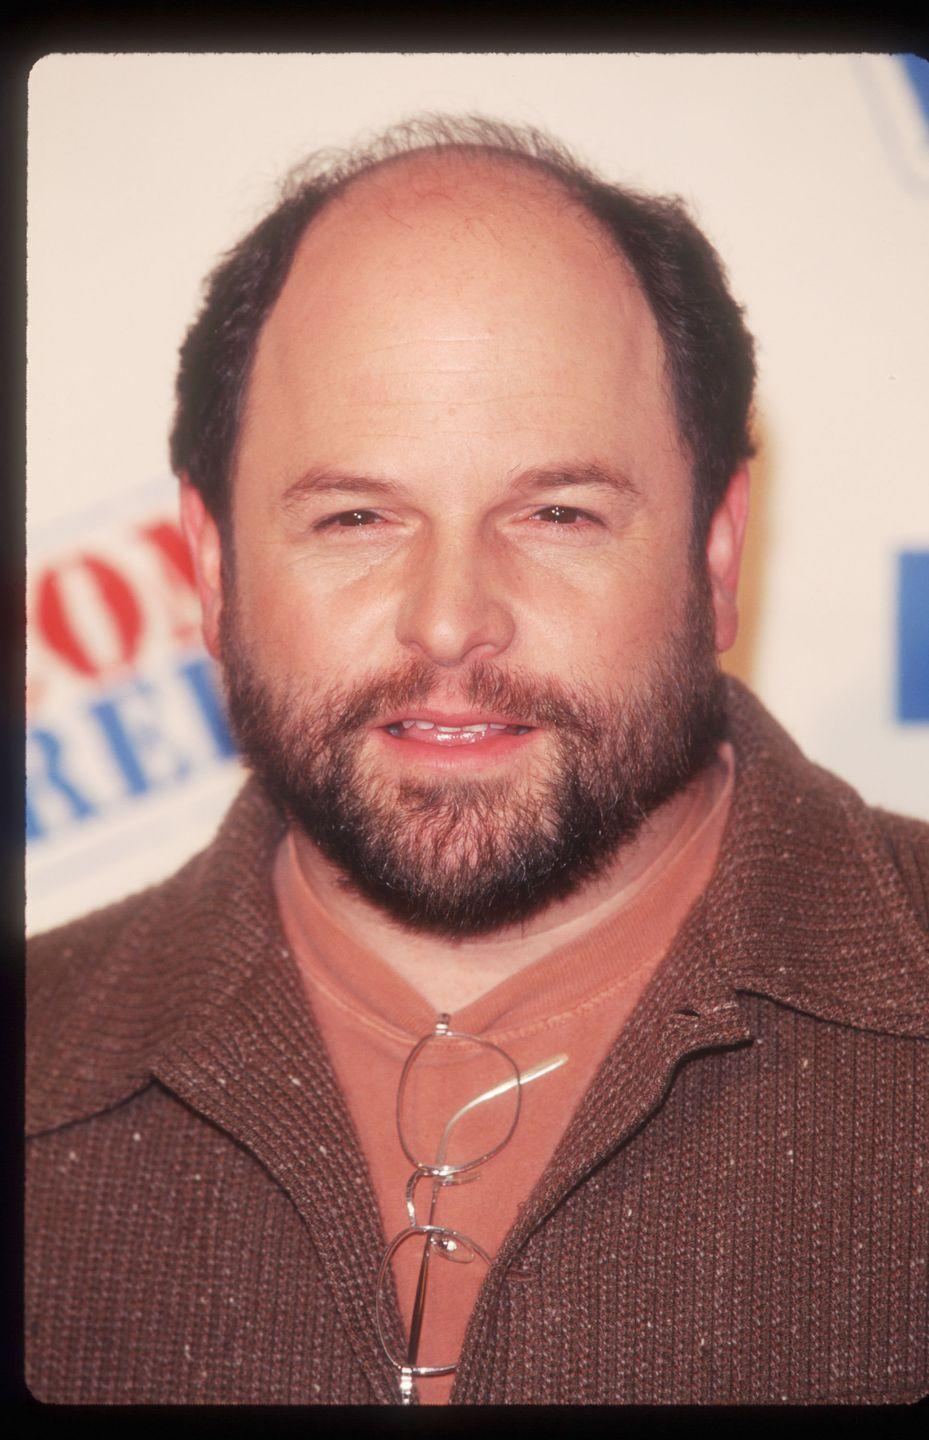 <p>Jason Alexander's career took off on 1981's Broadway production of <em>Merrily We Roll Along. </em>In 1989, he earned a Tony for <em>Jerome Robbins' Broadway</em>. Alexander is best known for crossing over to television and starring as George Costanza in <em>Seinfeld </em>from 1989 to 1998. His film roles include <em>Pretty Woman, </em><em>Jacob's Ladder </em>and <em>Shallow Hal.</em></p>